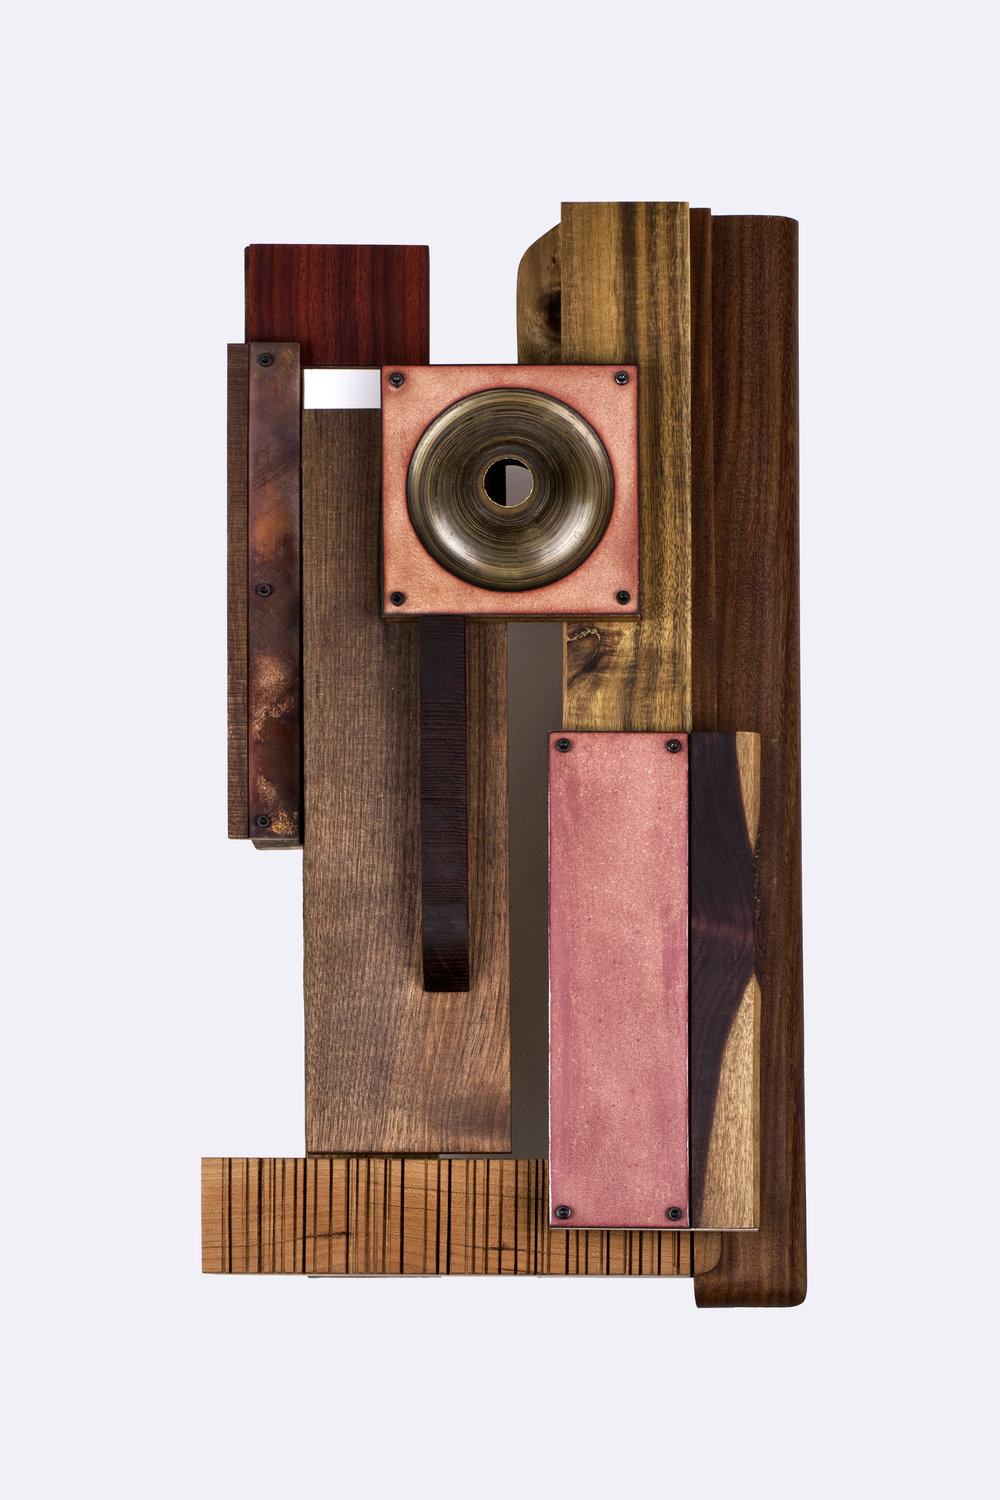 Ydmyk  | Wall sculpture, 2018 | 44x24x10,5cm | Materials: Wood, copper, steel, enamel, found objects.  Photo credit: Aliona Pazdniakova